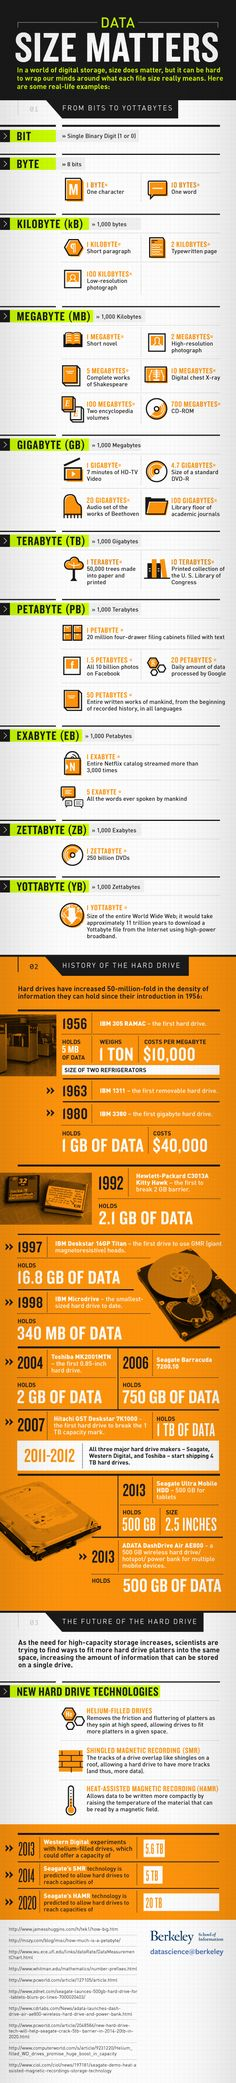 http://dataconomy.com/infographic-data-size-mattersinfographic-data-size-does-matter/ Infographic: Data Size Matters